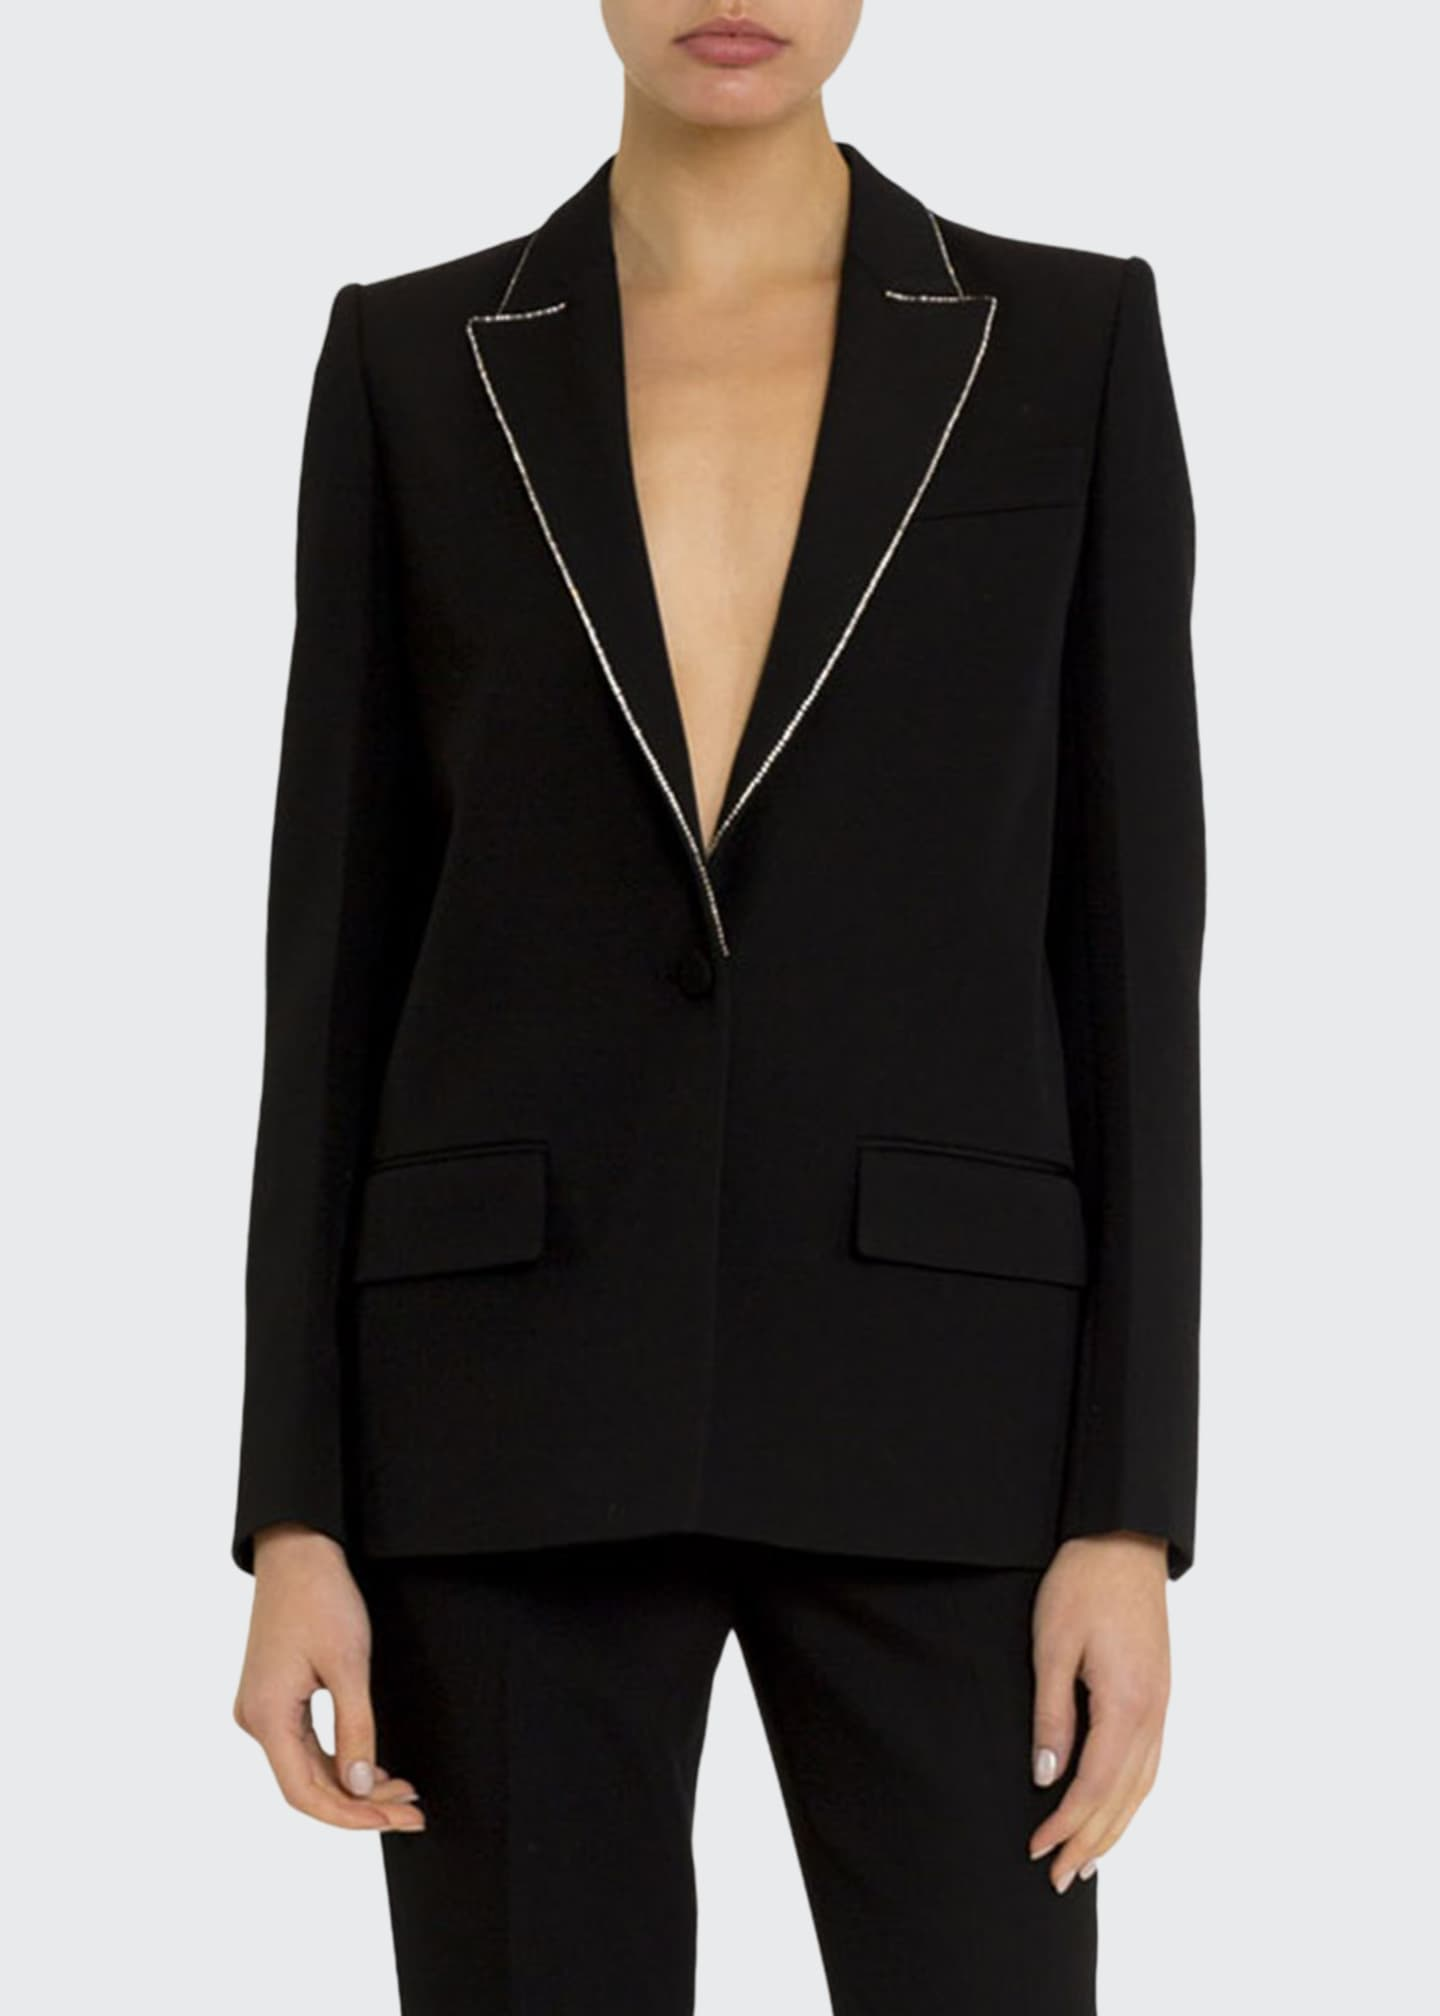 Givenchy Crystal-Trim Wool Blazer